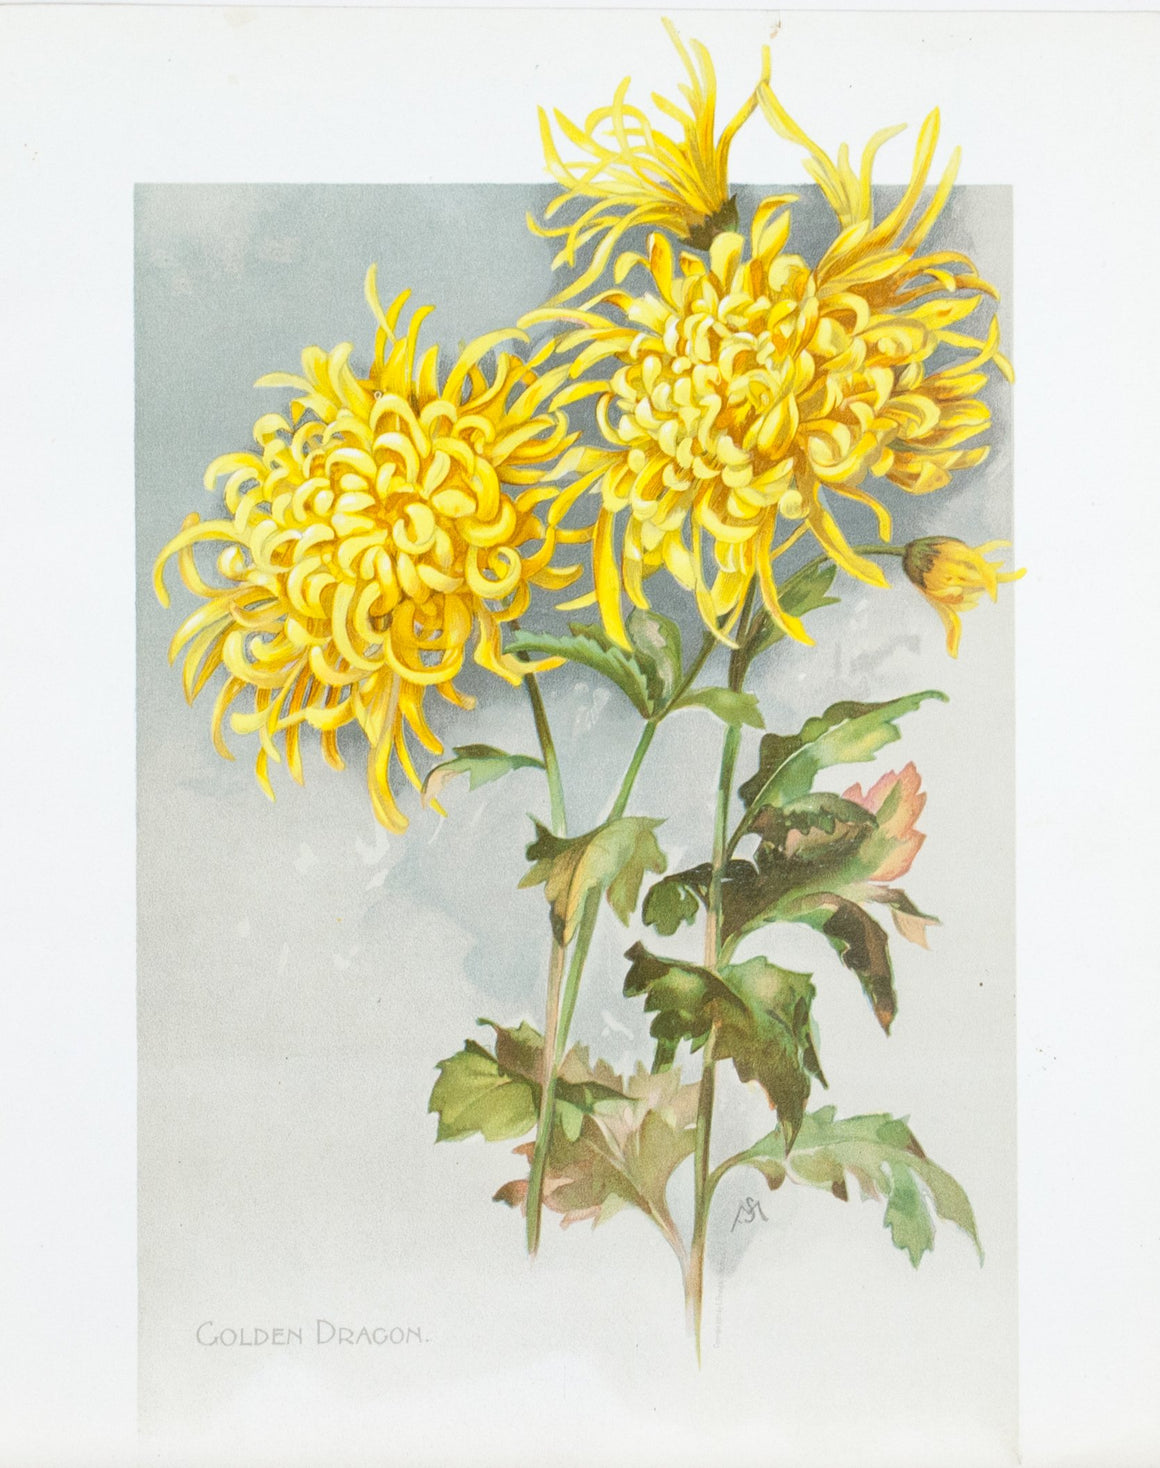 1890 Golden Dragon Chrysanthemum - Mathews